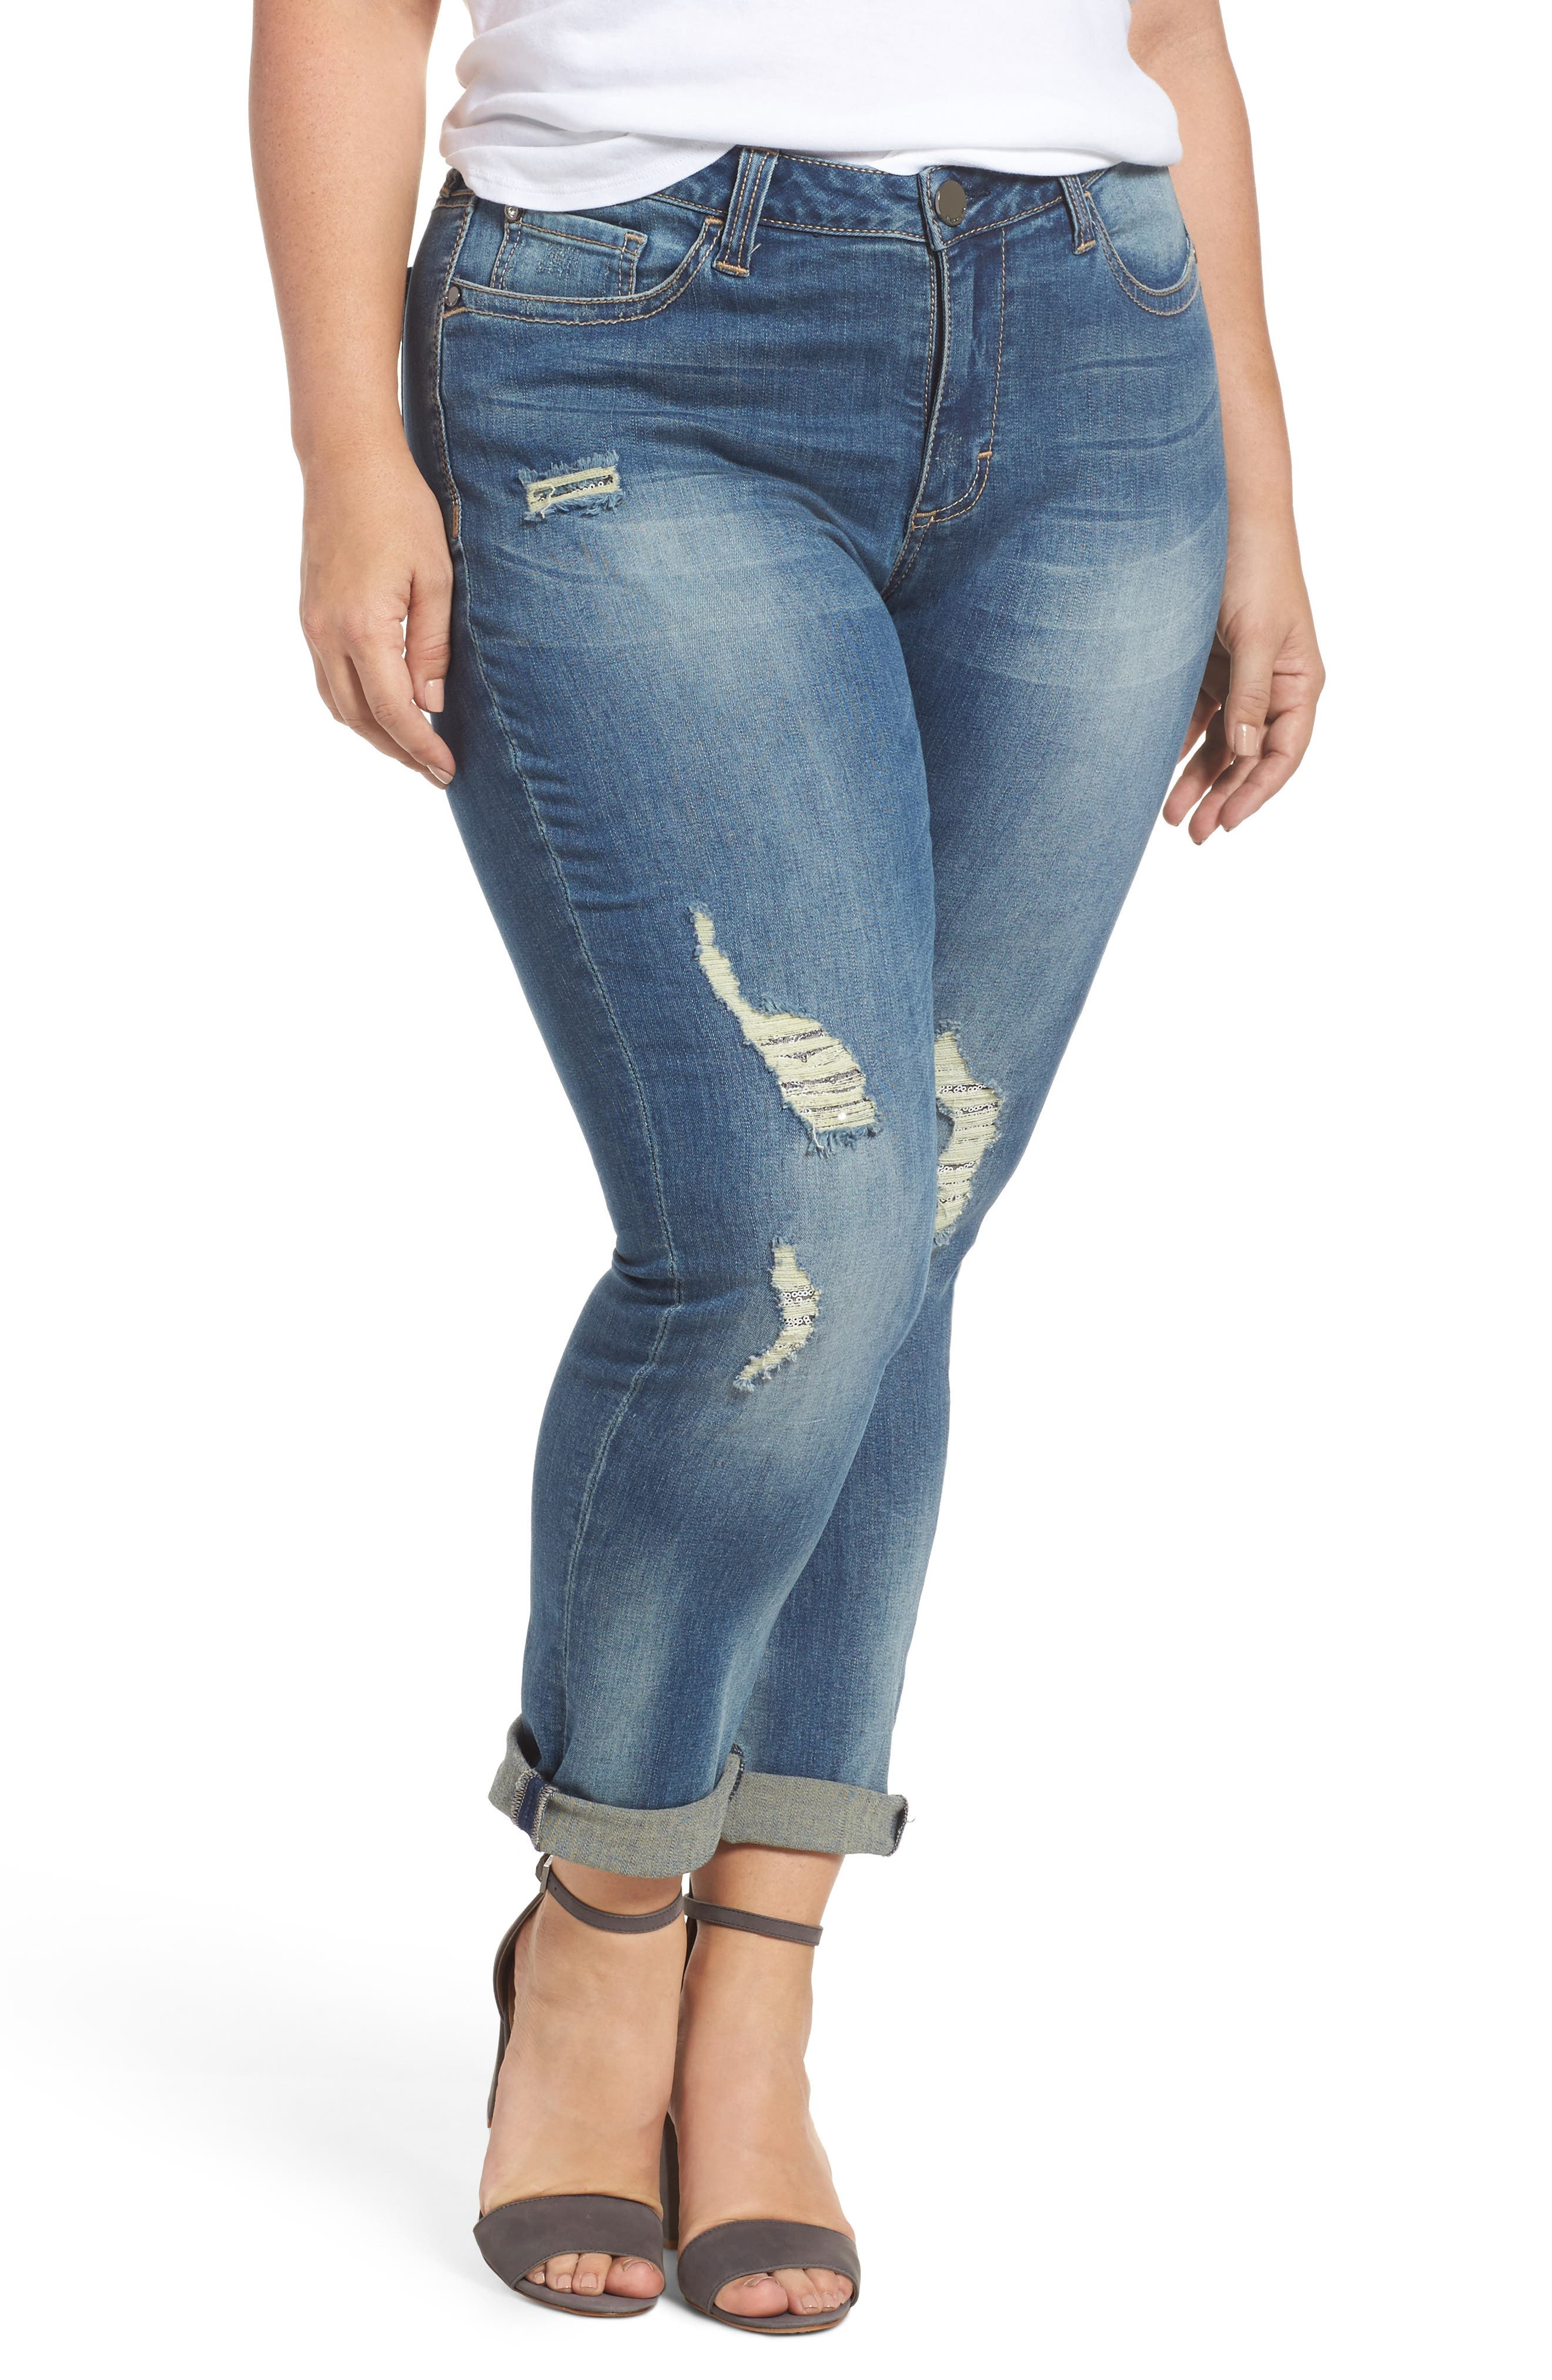 Alternate Image 1 Selected - Seven7 Ripped & Embellished Skinny Jeans (Banks) (Plus Size)